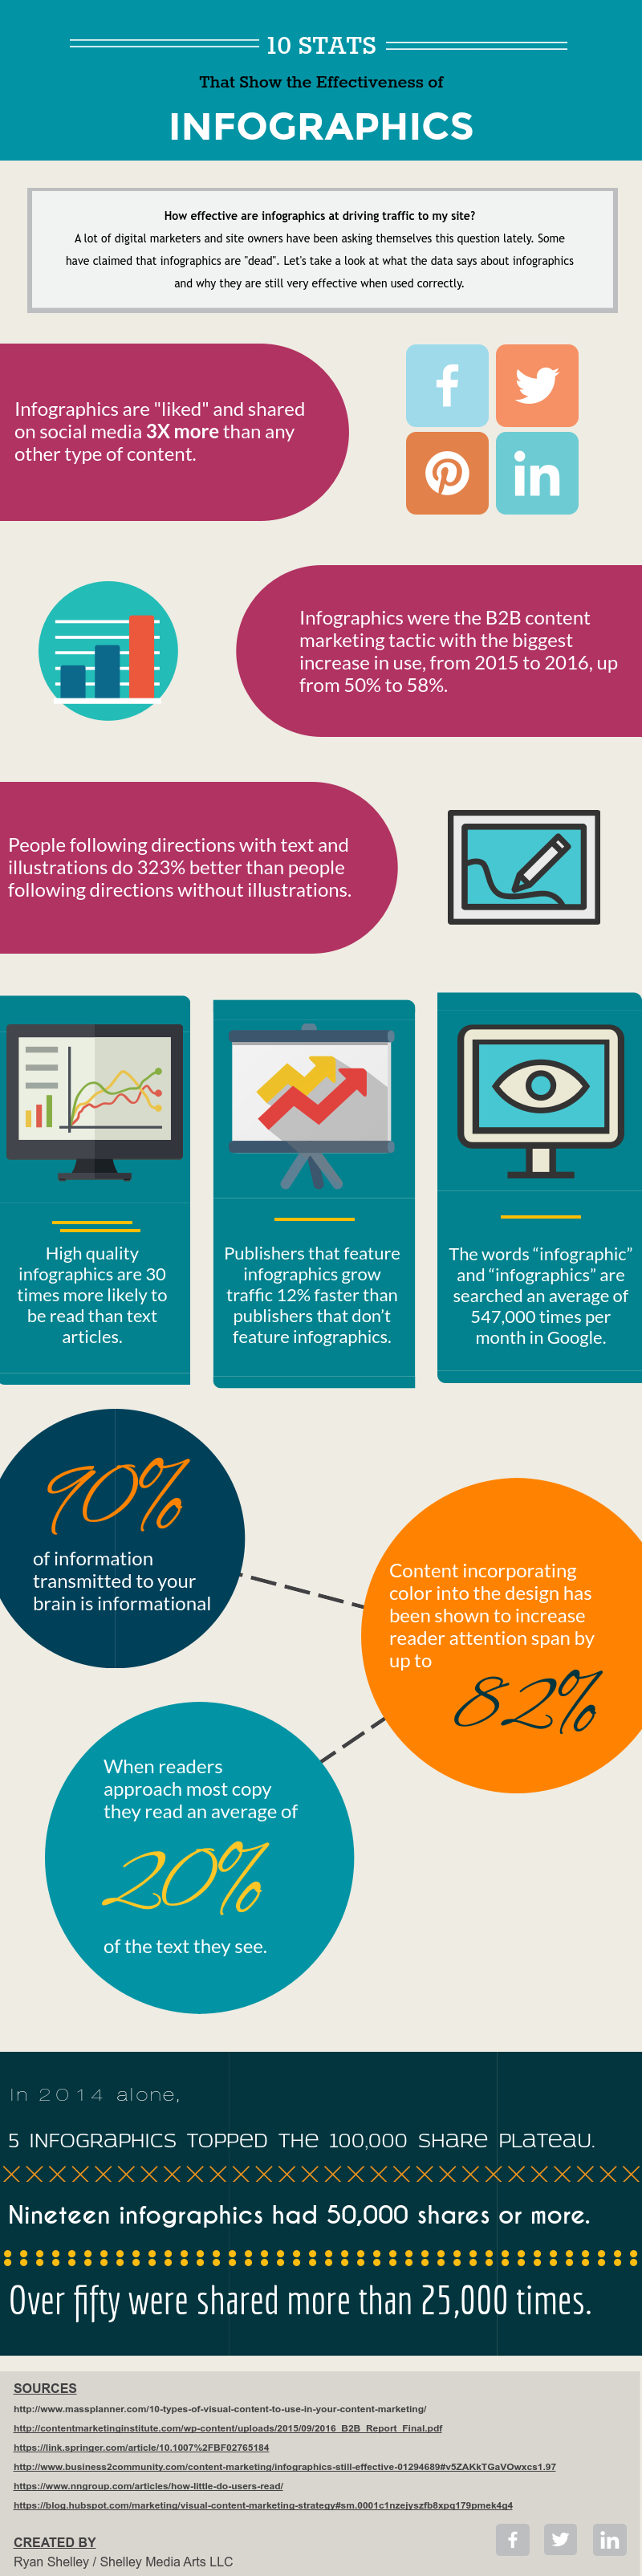 Why-Infographics-Work (2).png